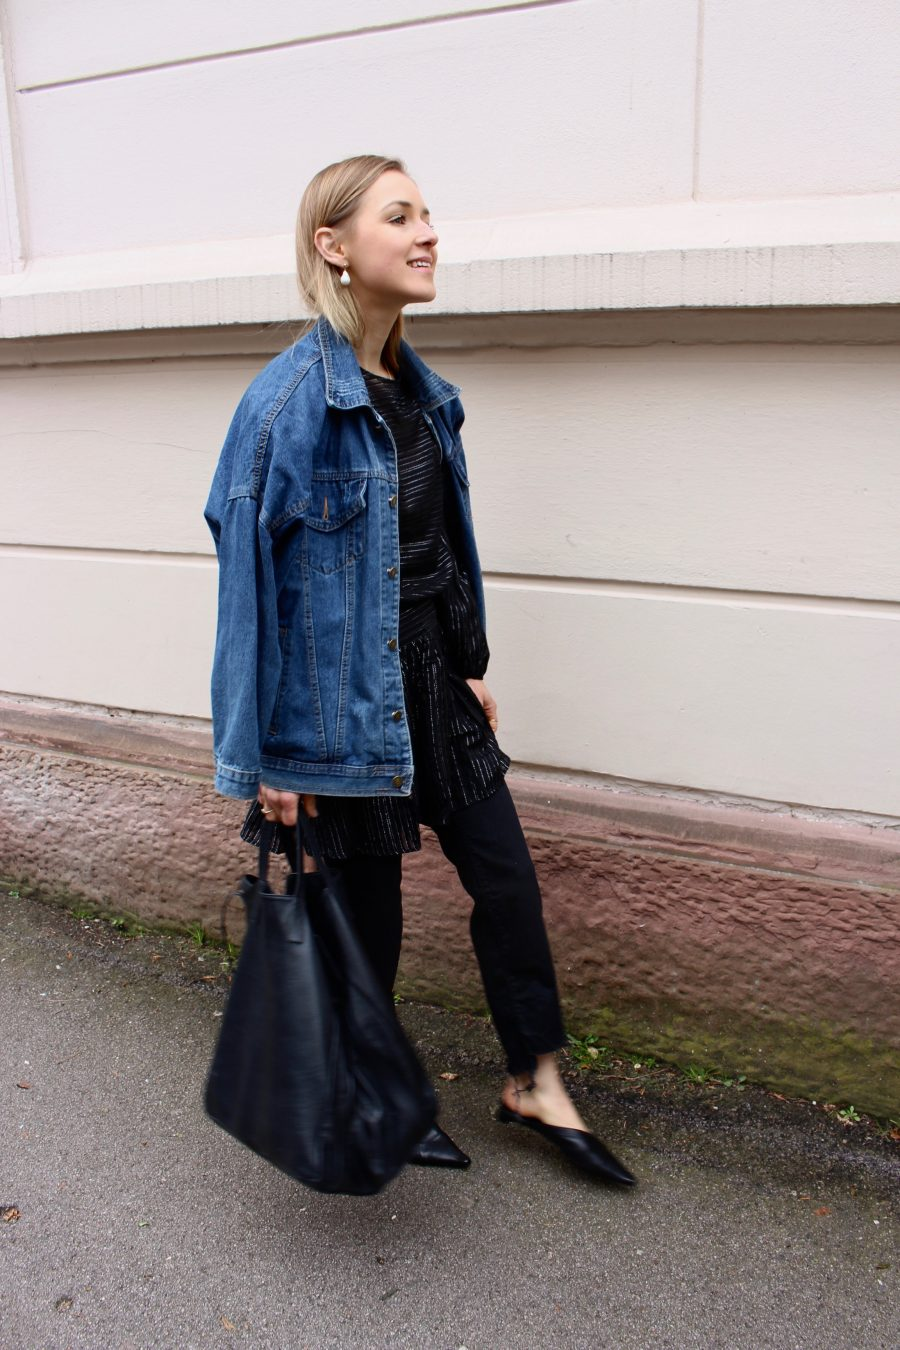 Denim Jacket oversized balenciaga